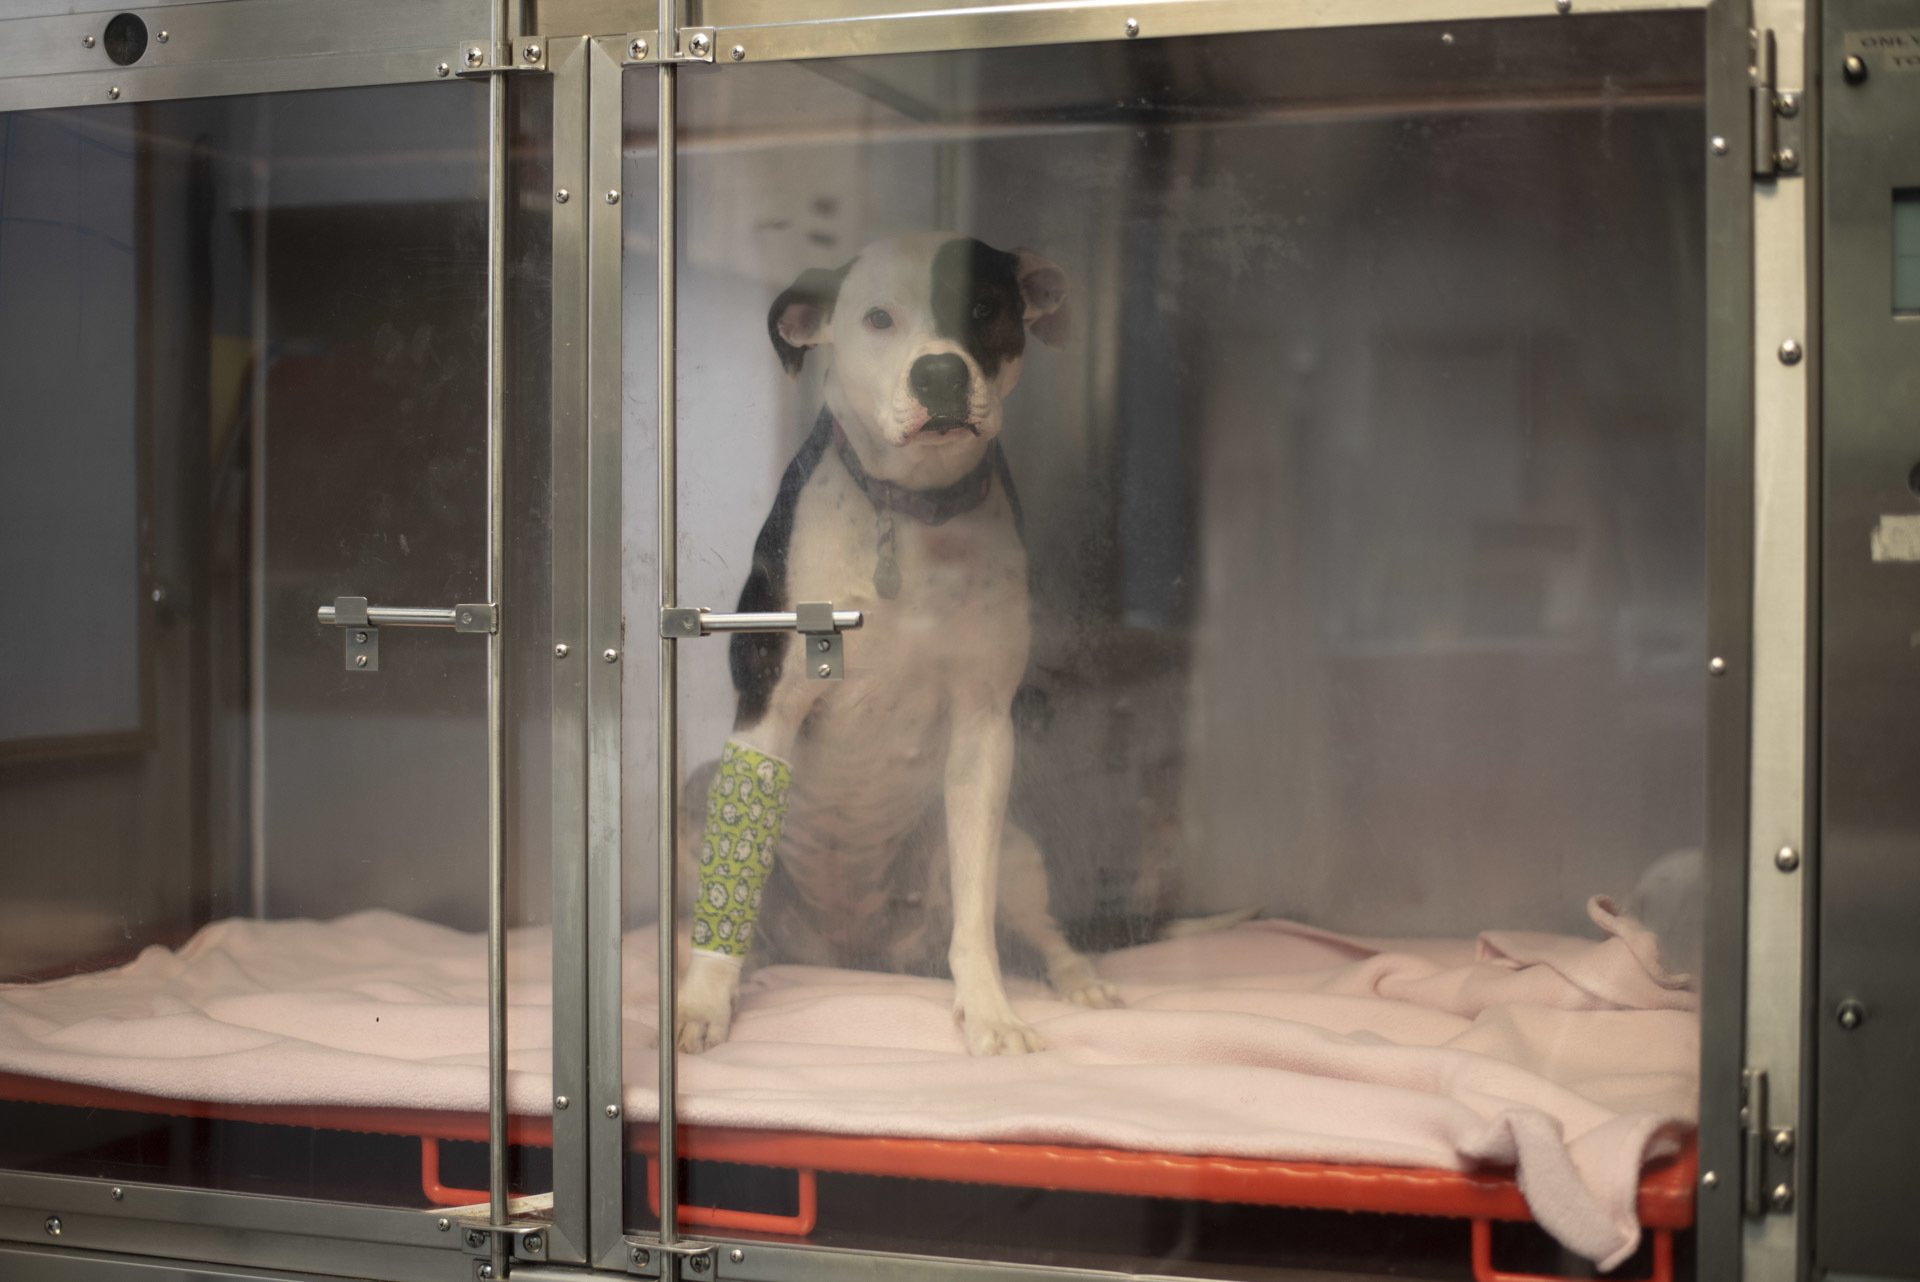 Did you know that just like people visiting from lower elevations, pets can also get altitude sickness too? Oxygen cages provide air with a higher oxygen content to animals. For more on Basalt's Valley Emergency Pet Care, see page 10. Photo by Laurel Smith.